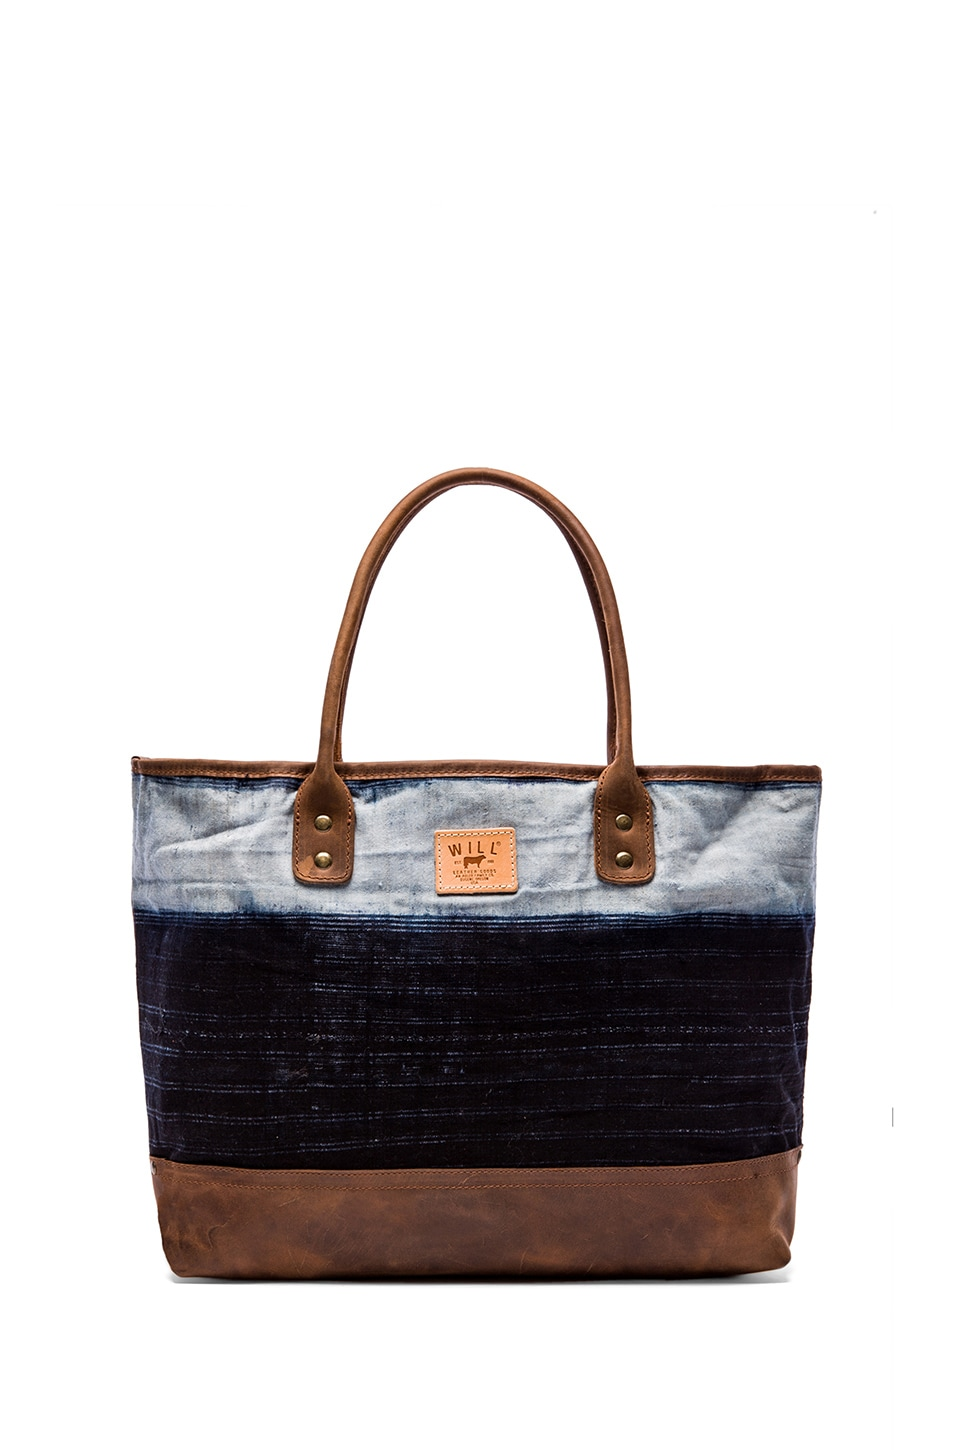 WILL Leather Goods The Indigo Batik Tote in Linen